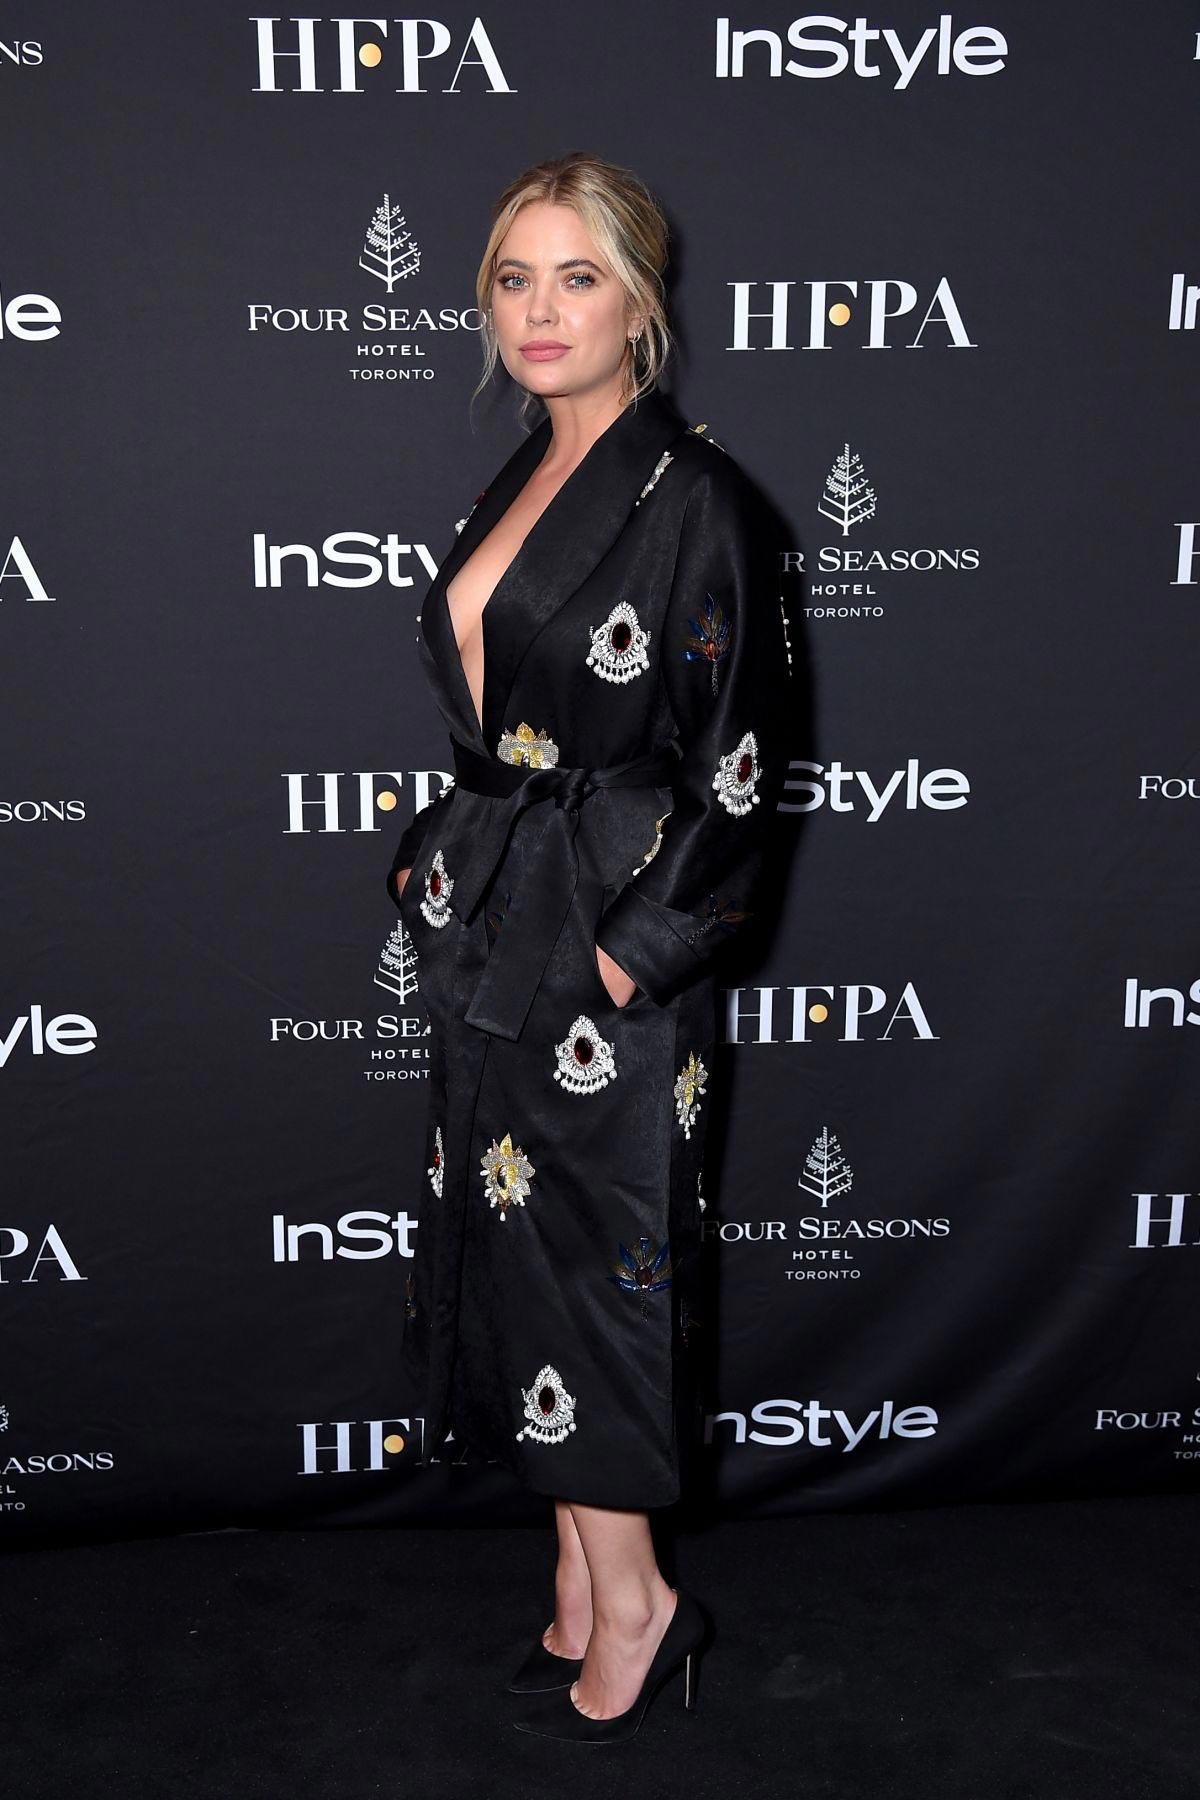 Ashley Benson at Hfpa and Instyle's Tiff Celebration in Toronto 2018/09/08 1